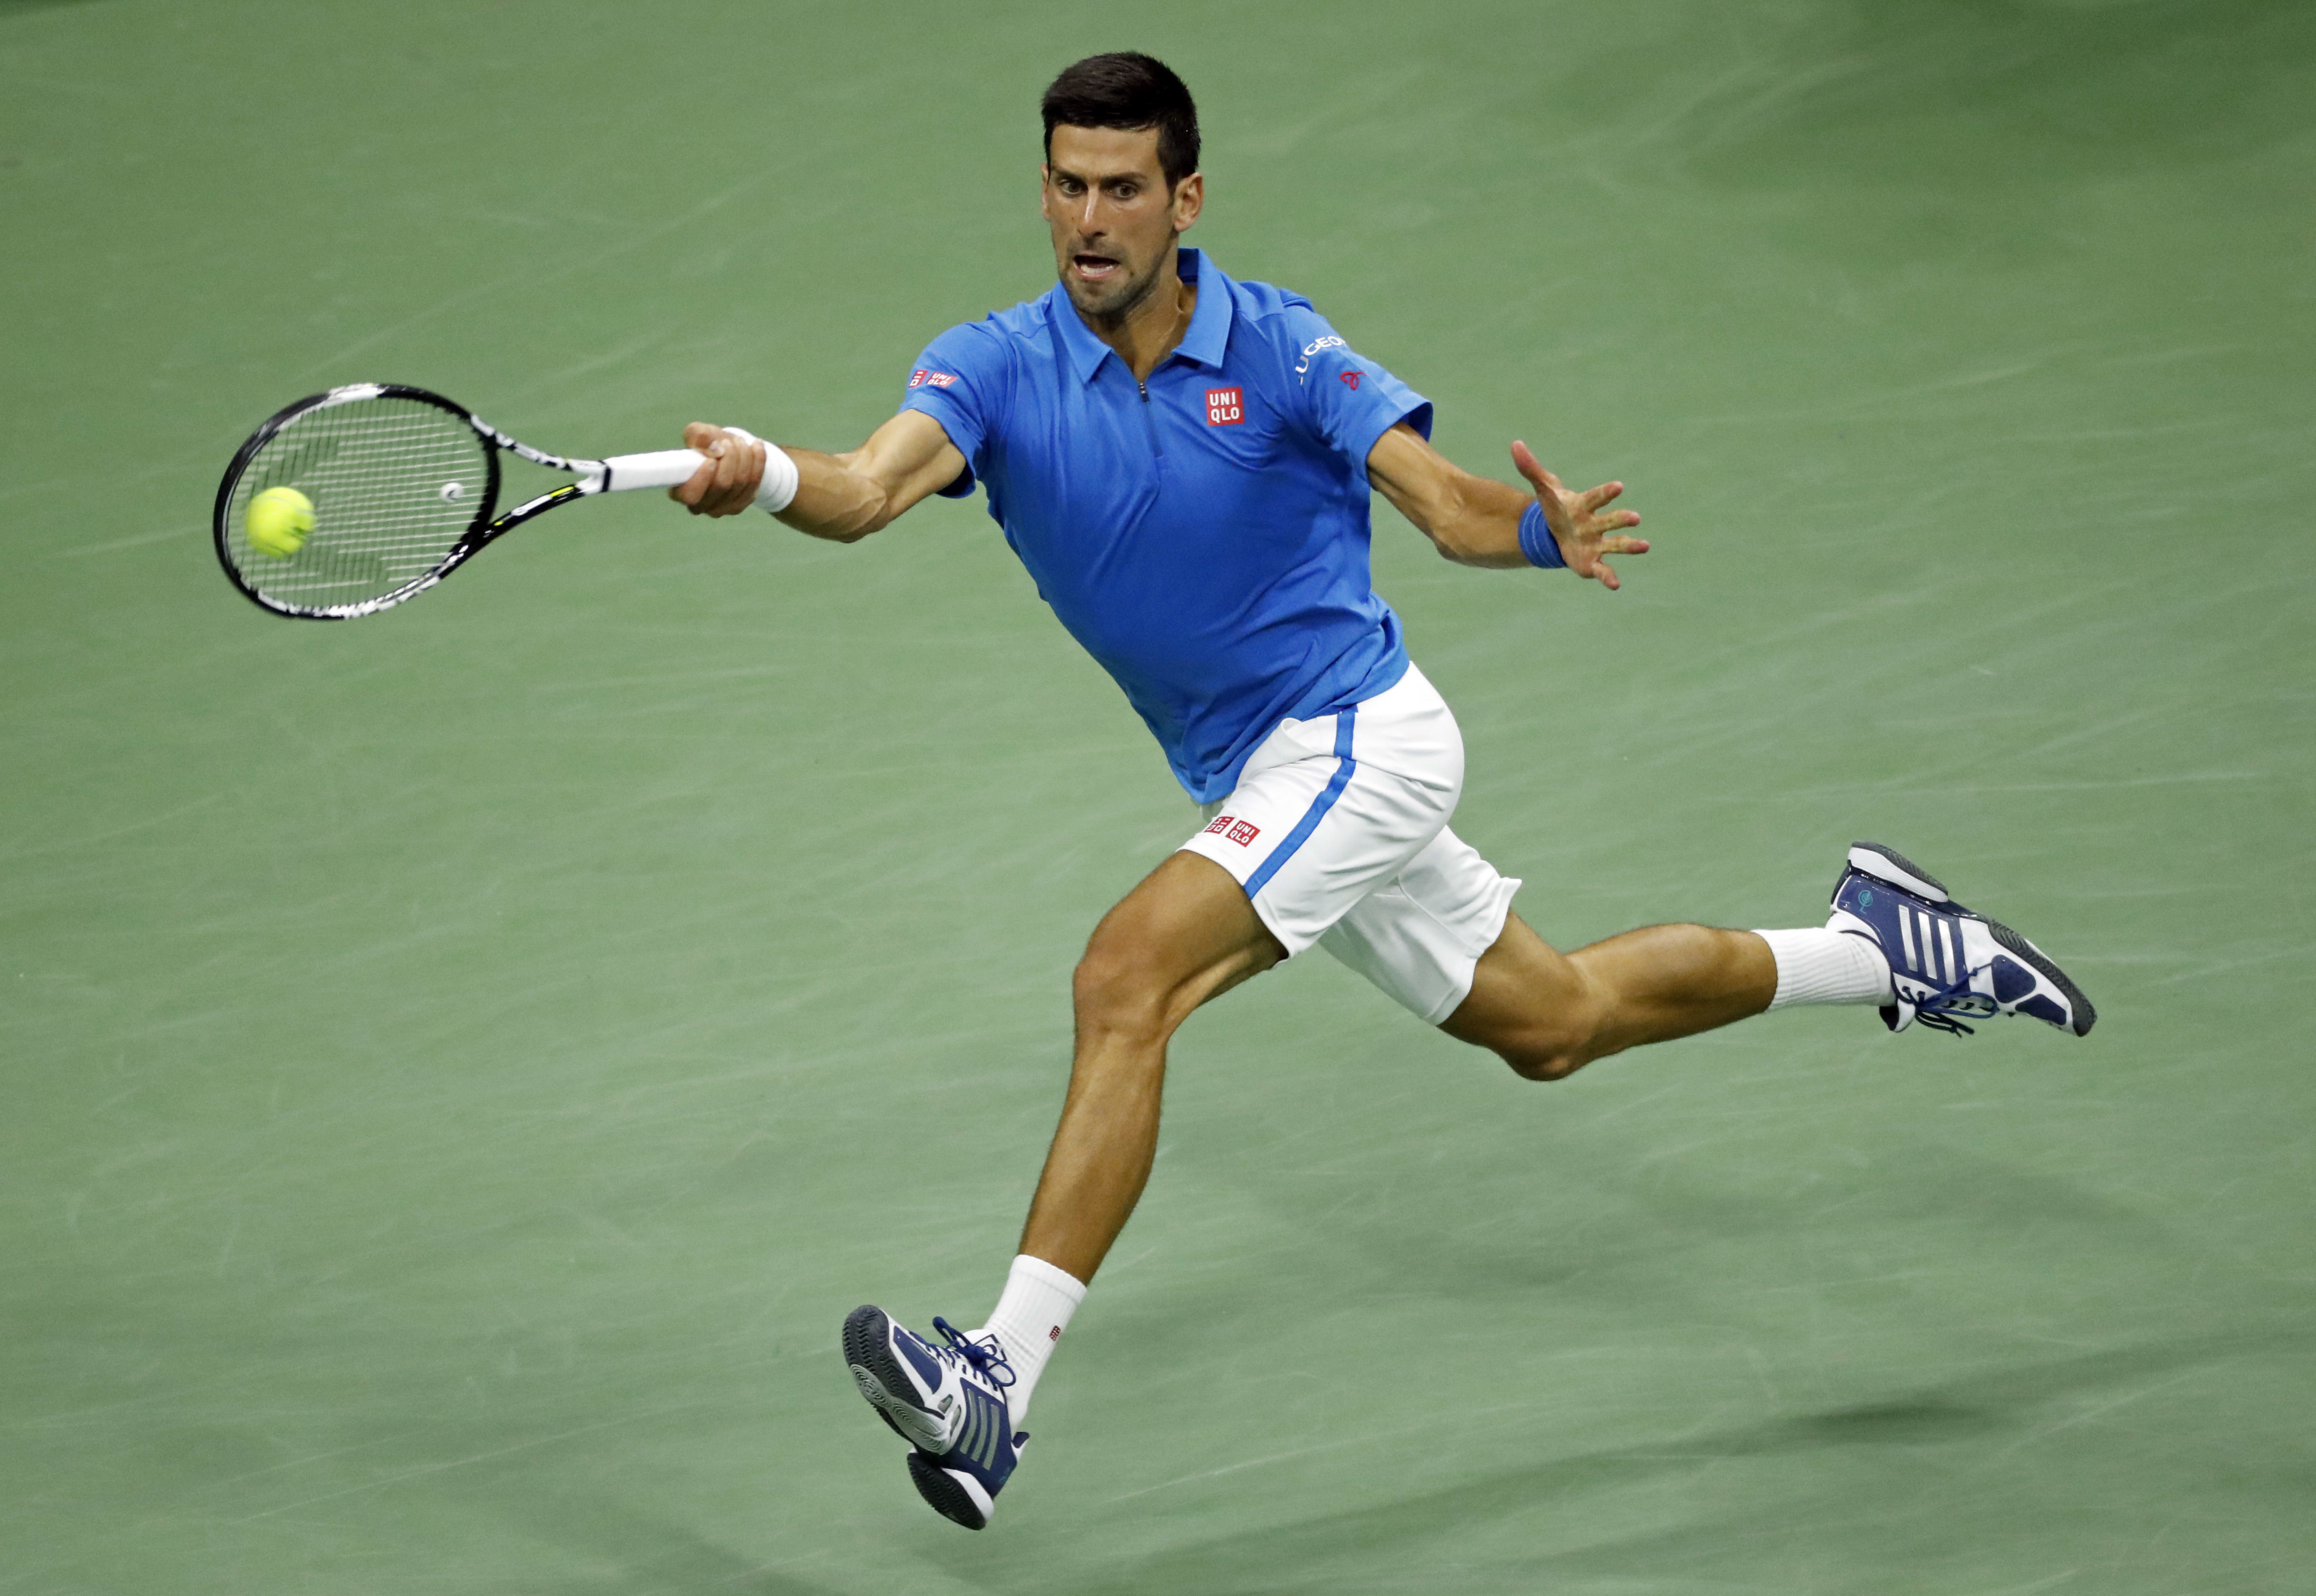 Novak Djokovic, of Serbia, hits a return shot to Kyle Edmund, of Britain, during the fourth round of the U.S. Open tennis tournament, Sunday, Sept. 4, 2016, in New York. (AP Photo/Adam Hunger)